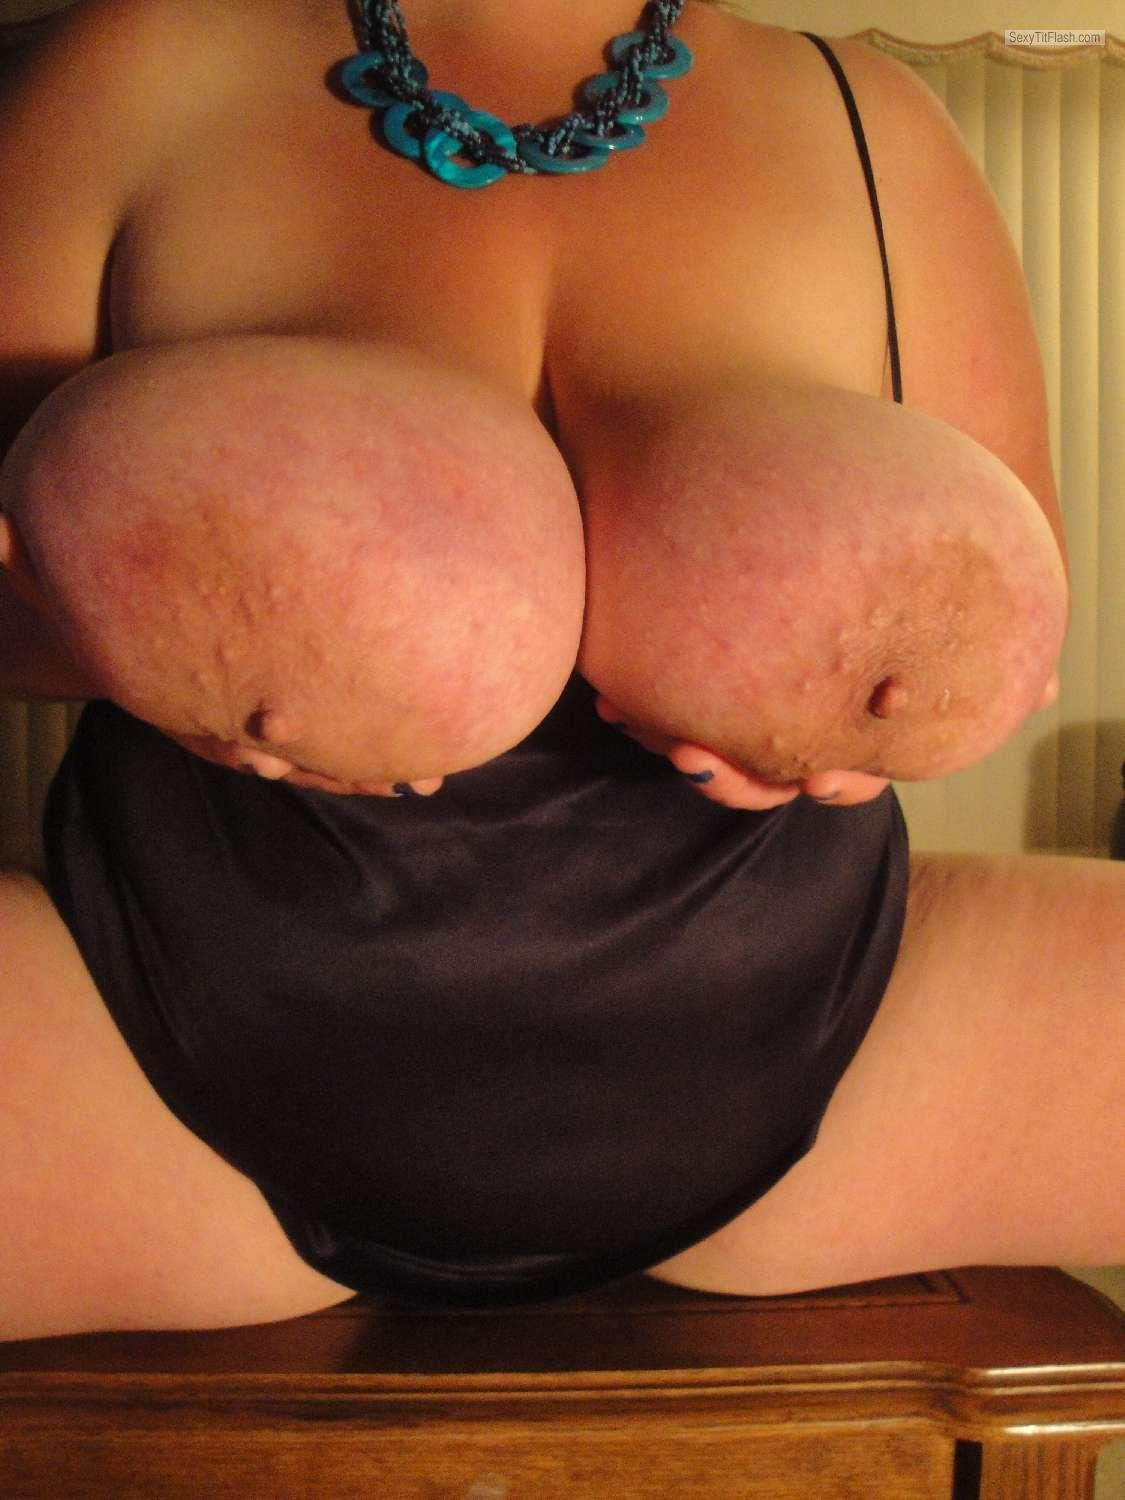 Tit Flash: My Extremely Big Tits - Mandy6980 from United States